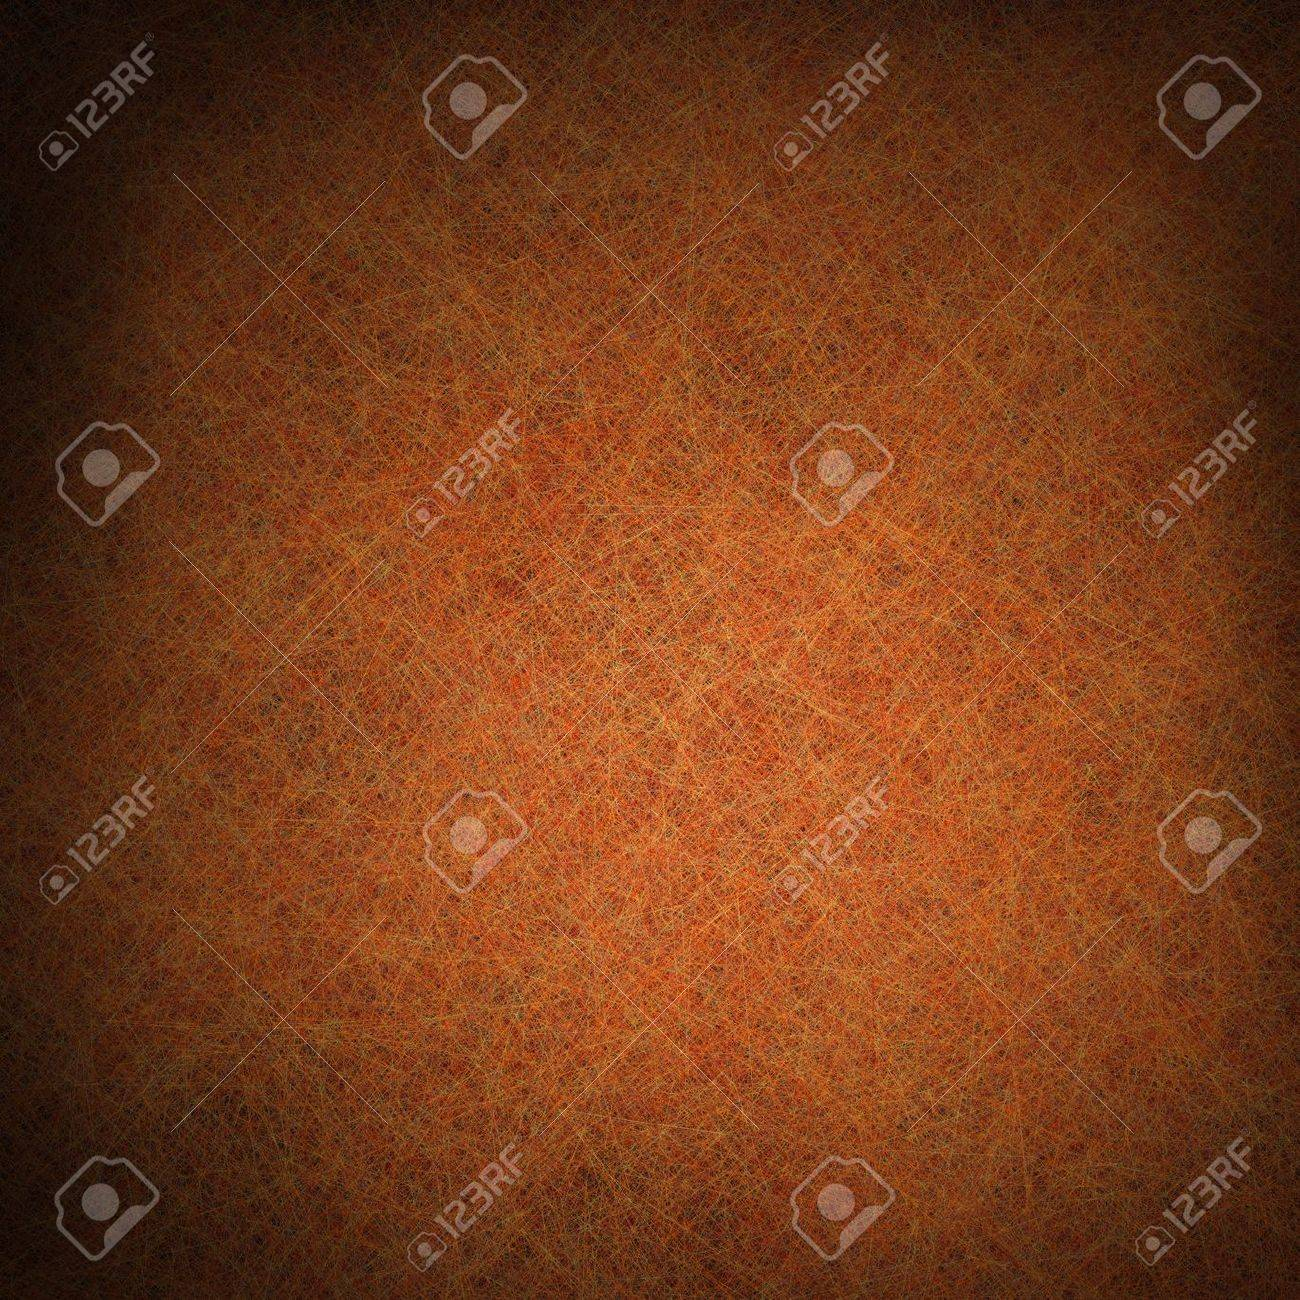 orange brown background with black vignette border and vintage grunge background texture design layout, autumn thanksgiving background colors, halloween backdrop for brochure or sign Stock Photo - 14187249